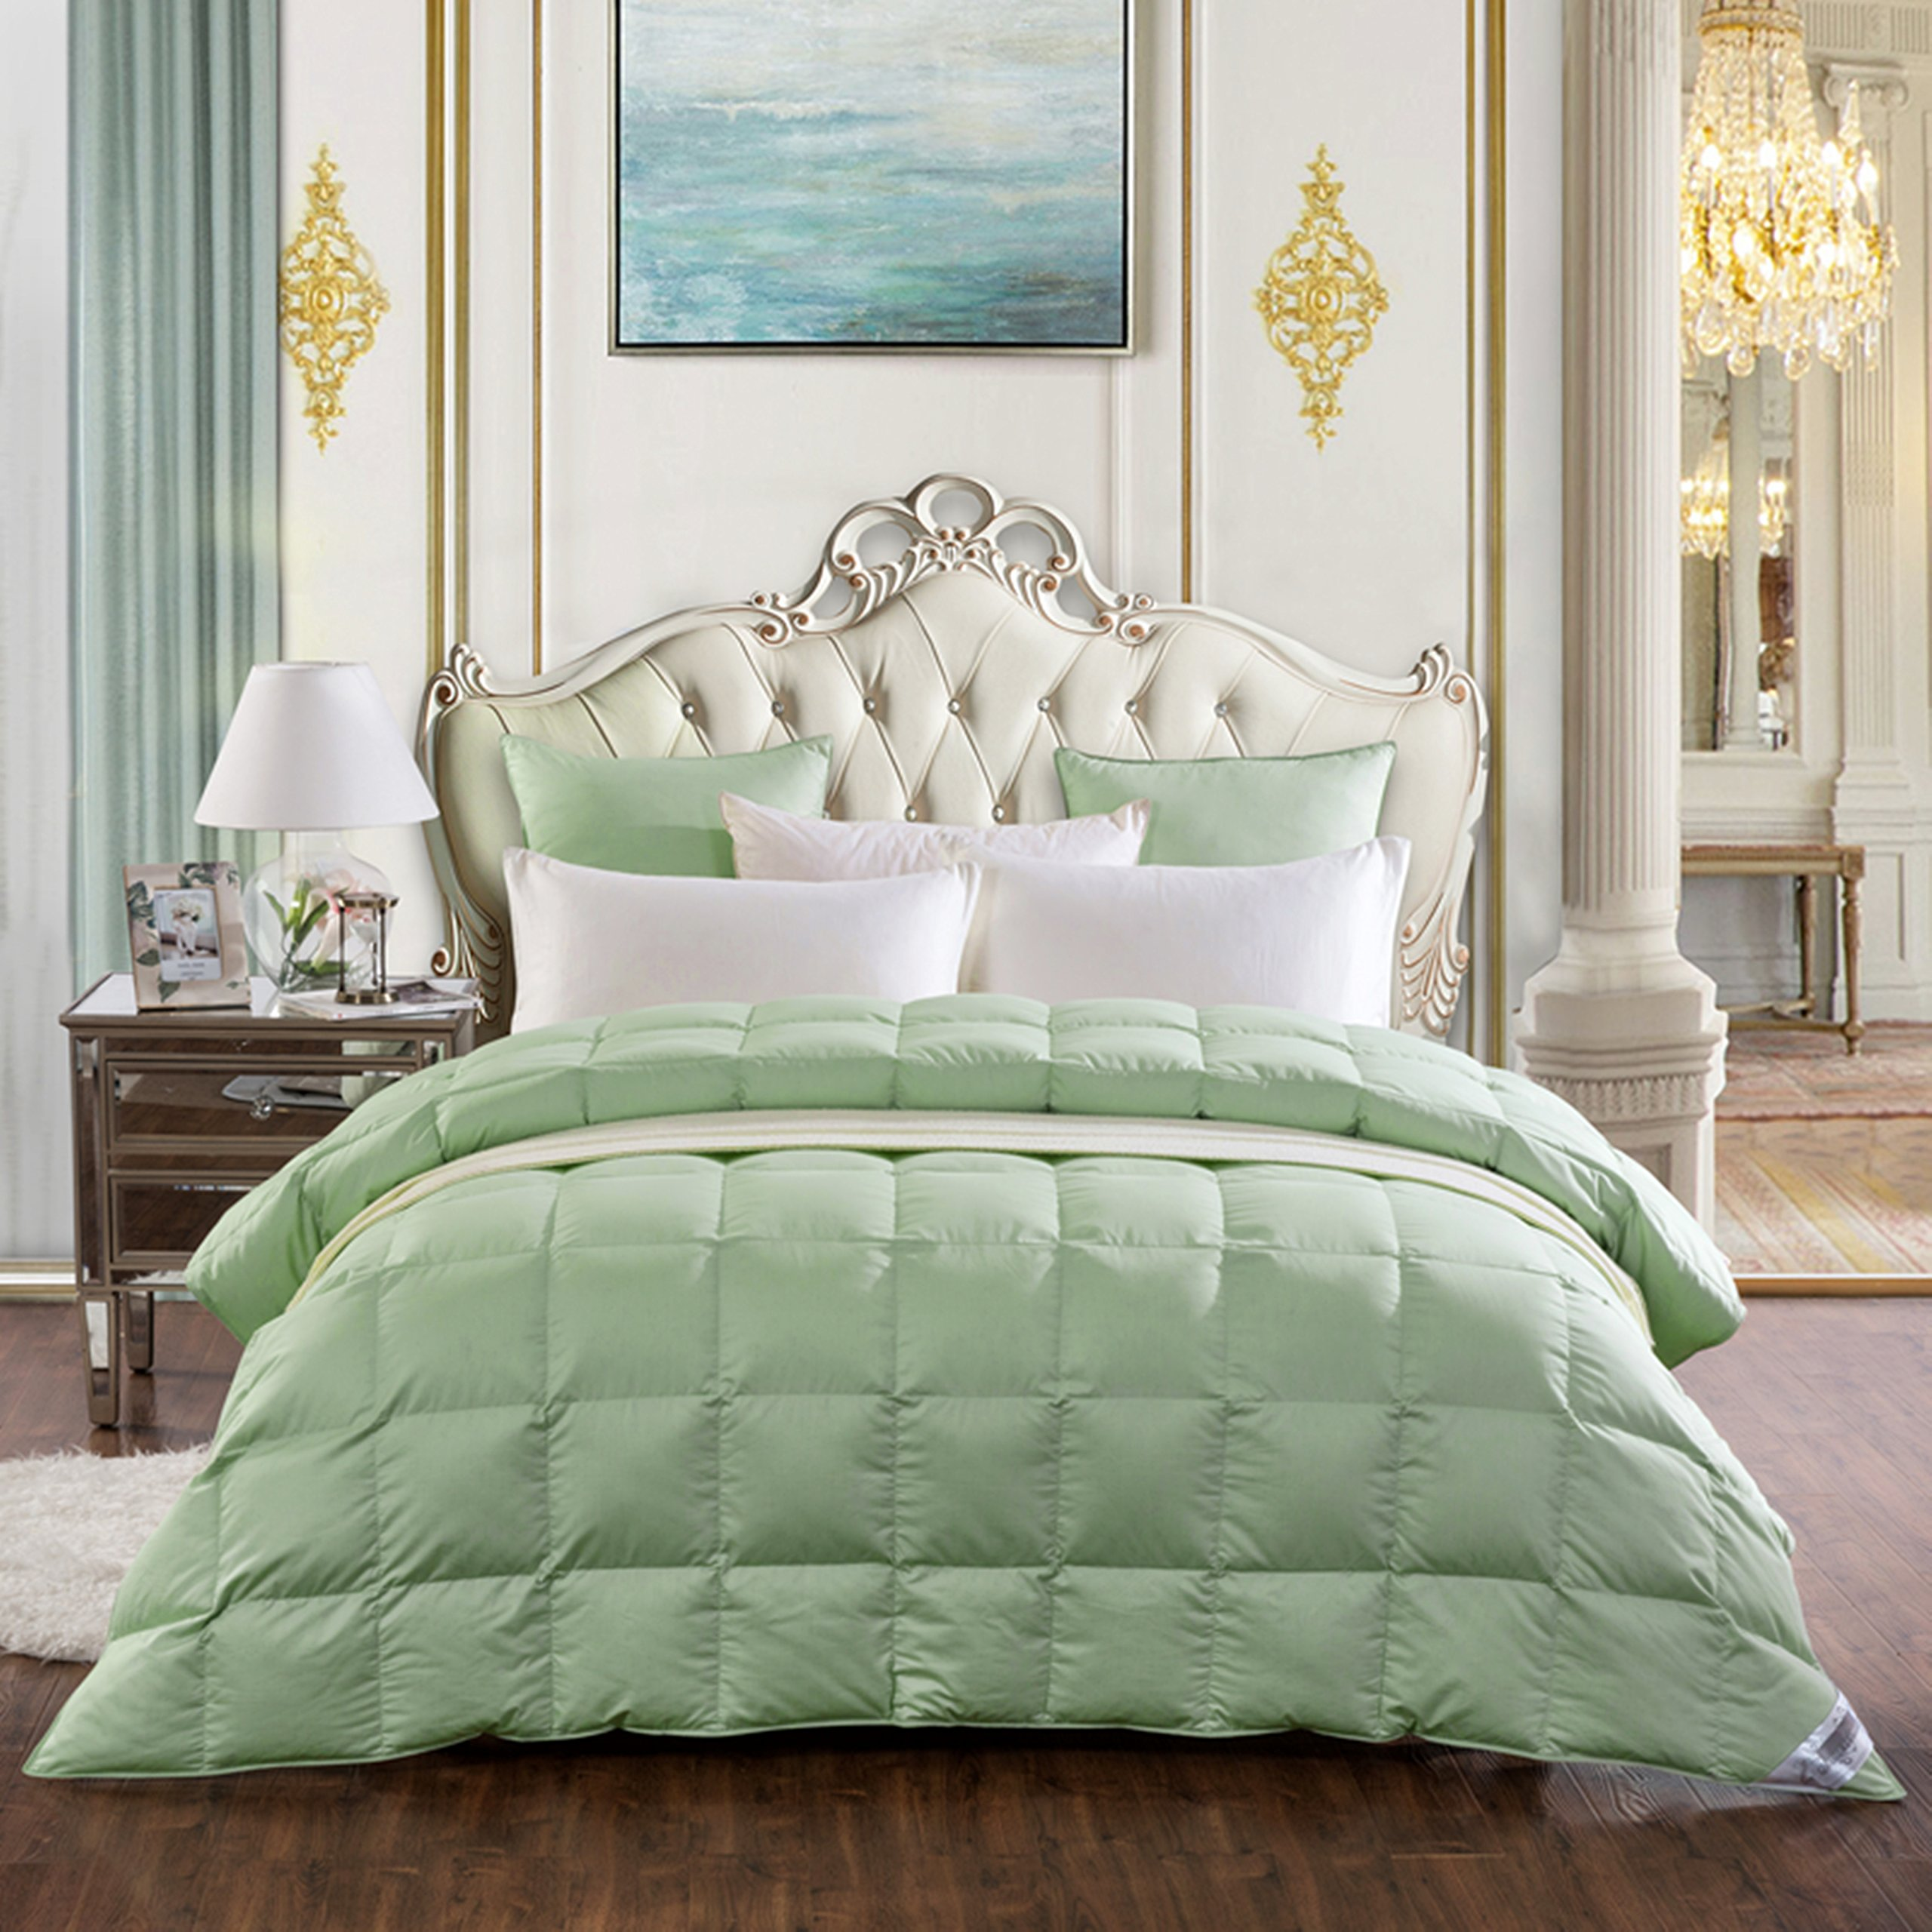 Lightweight White Goose Down and Feather Comforter Blanket for Summer Spring,Size CAL King,Green